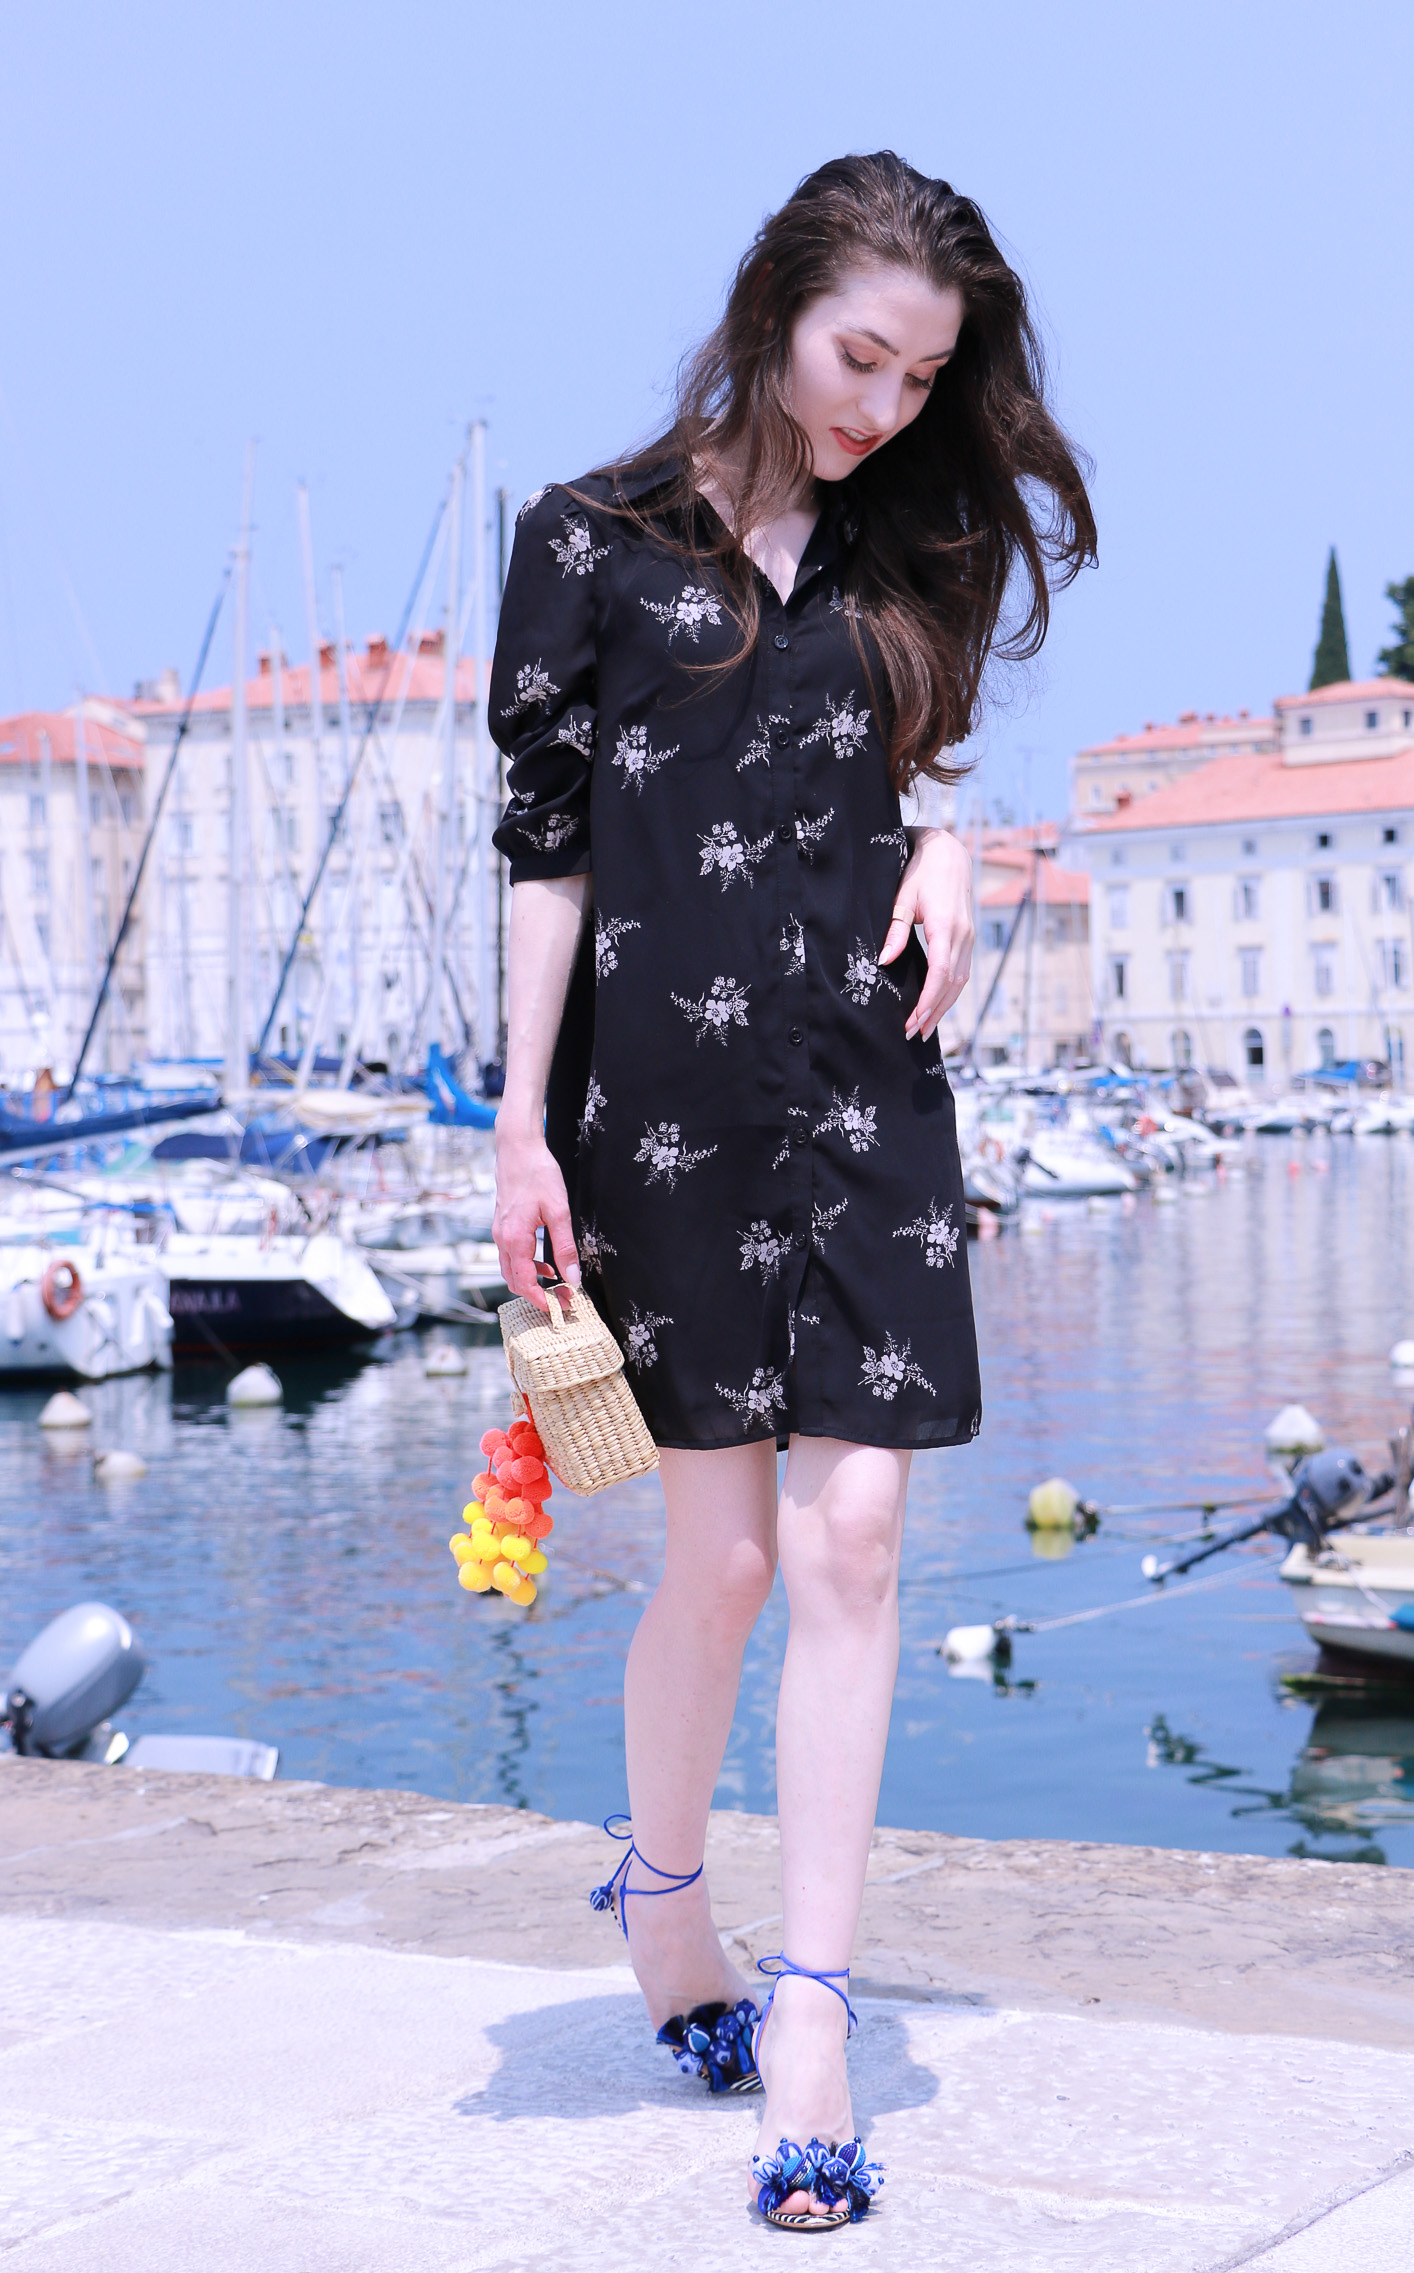 Fashion blogger Veronika Lipar of Brunette From Wall Street on her stroll through the seaside town wearing shirt dress and raffia basket bag